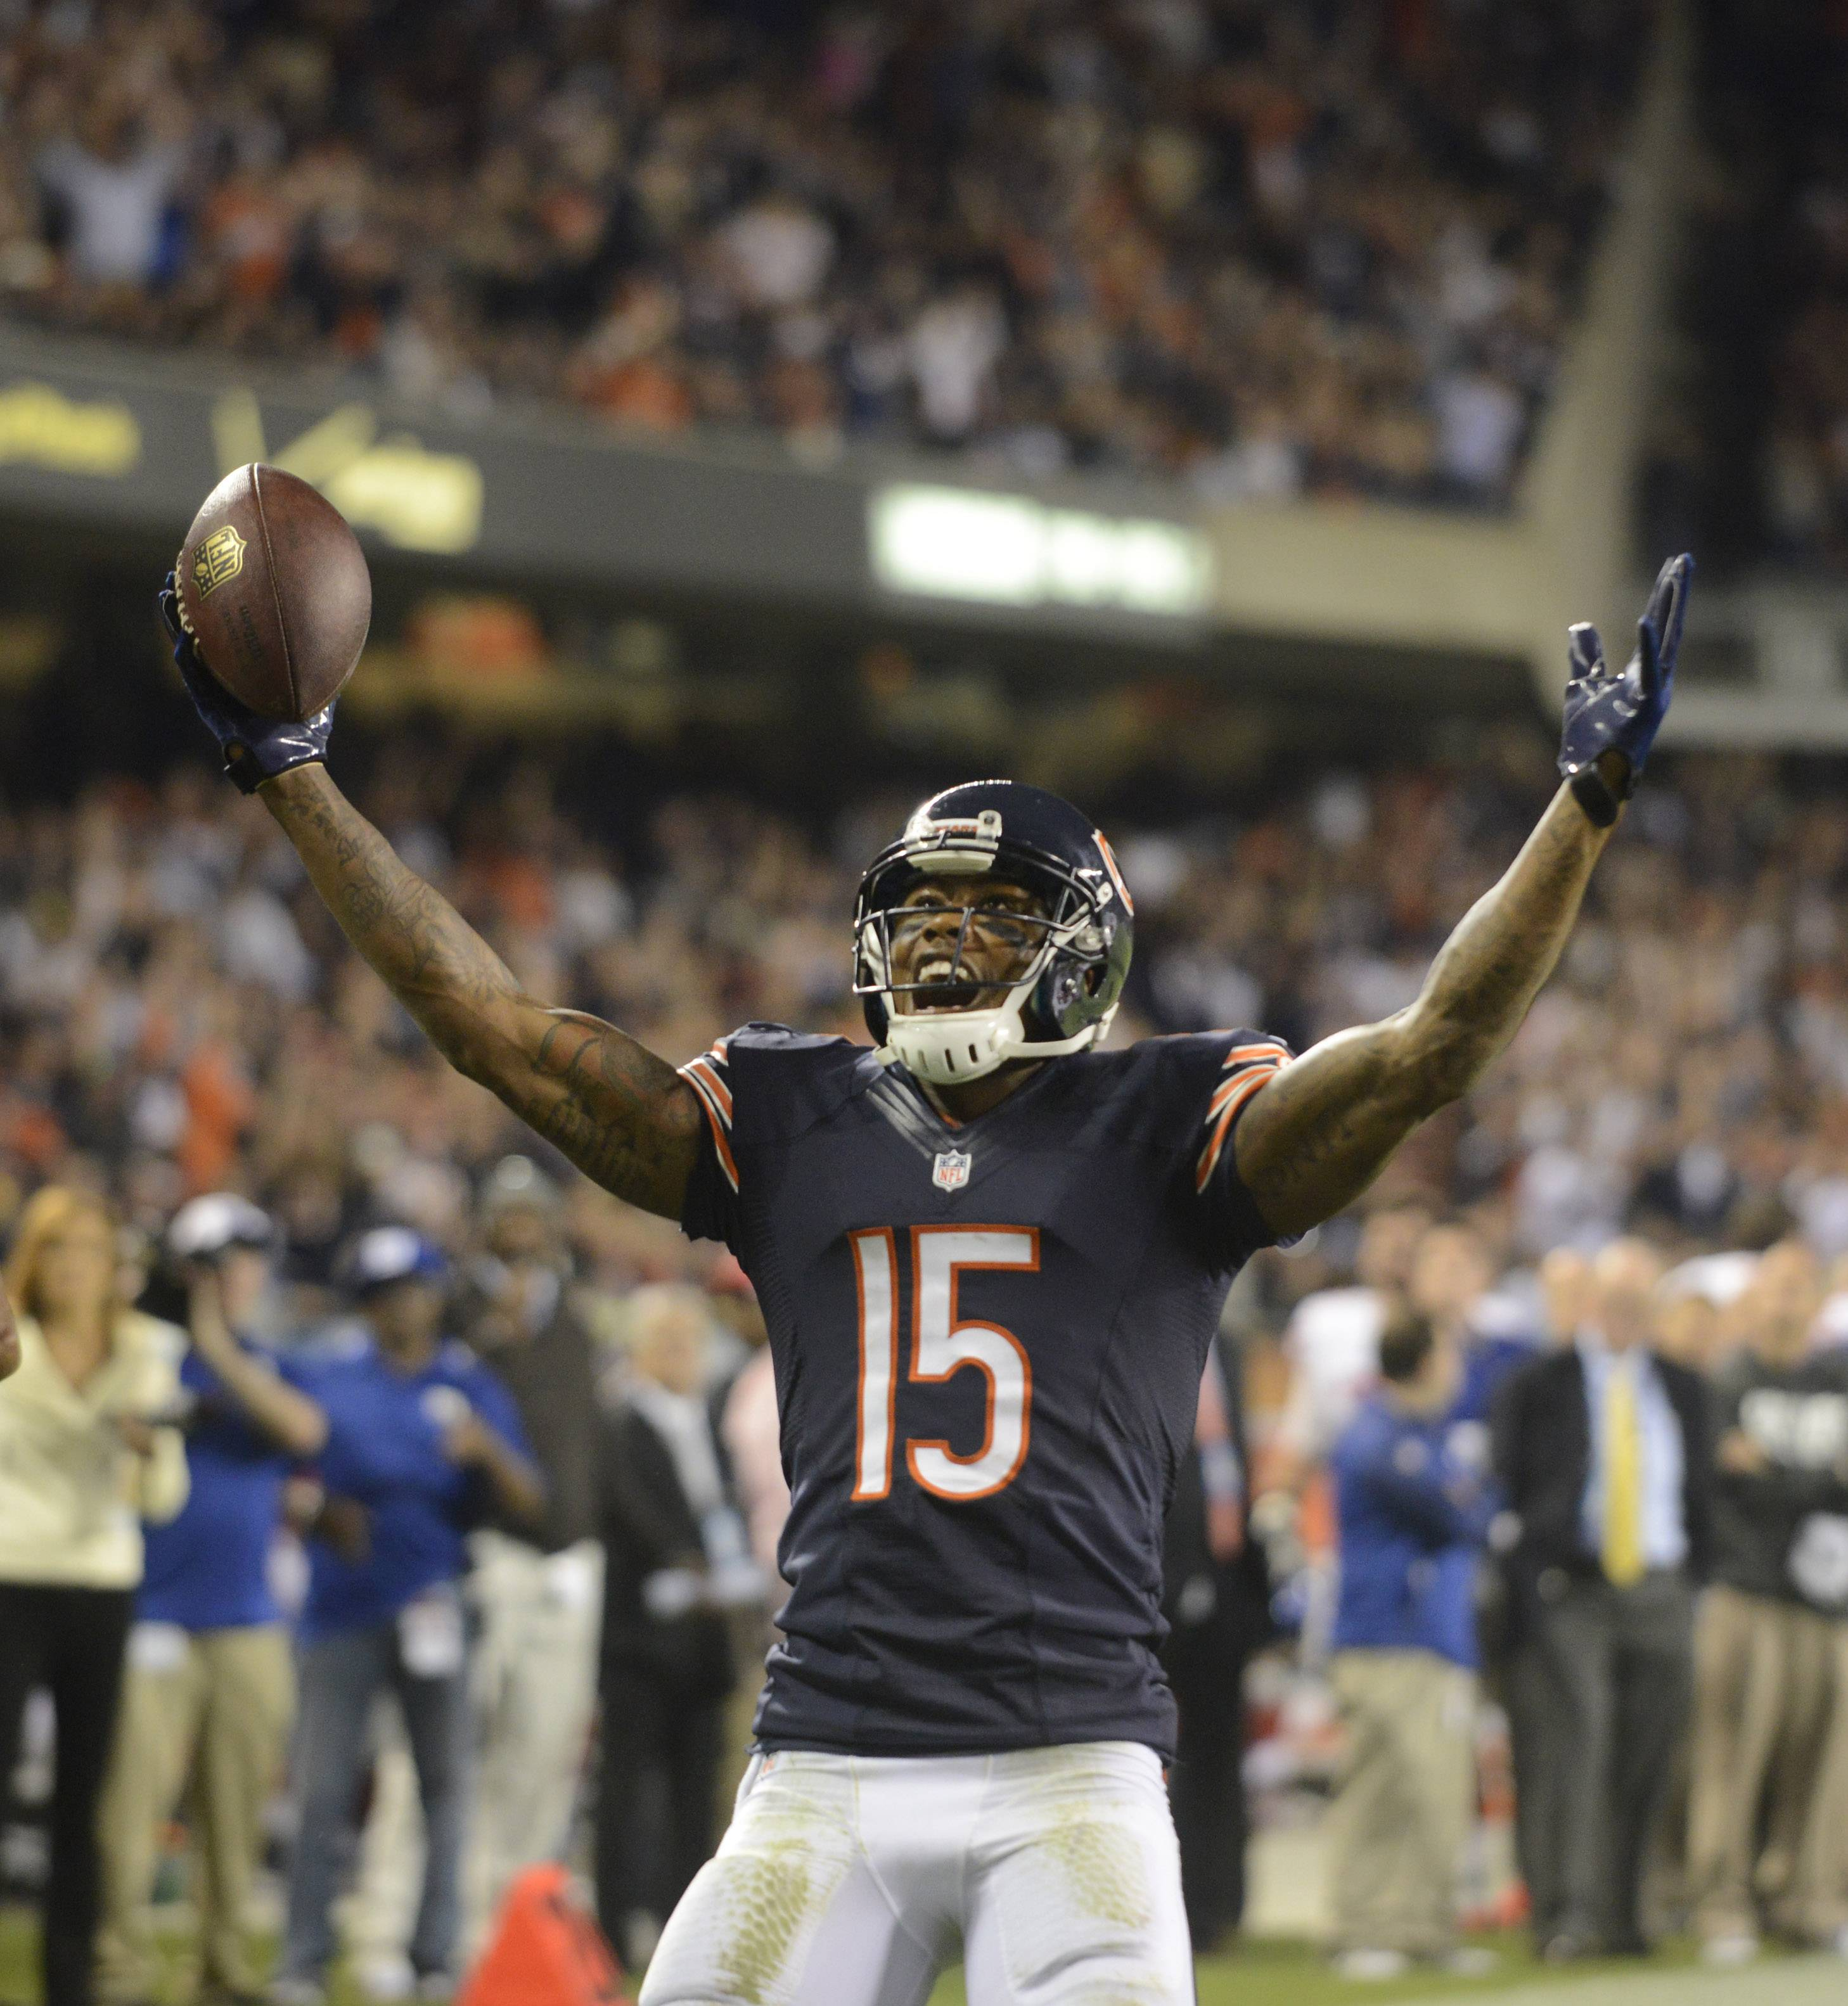 Bears wide receiver Brandon Marshall, who signed a $30 million contract extension with the team, is pledging $1 million of his pay to benefit mental illness.